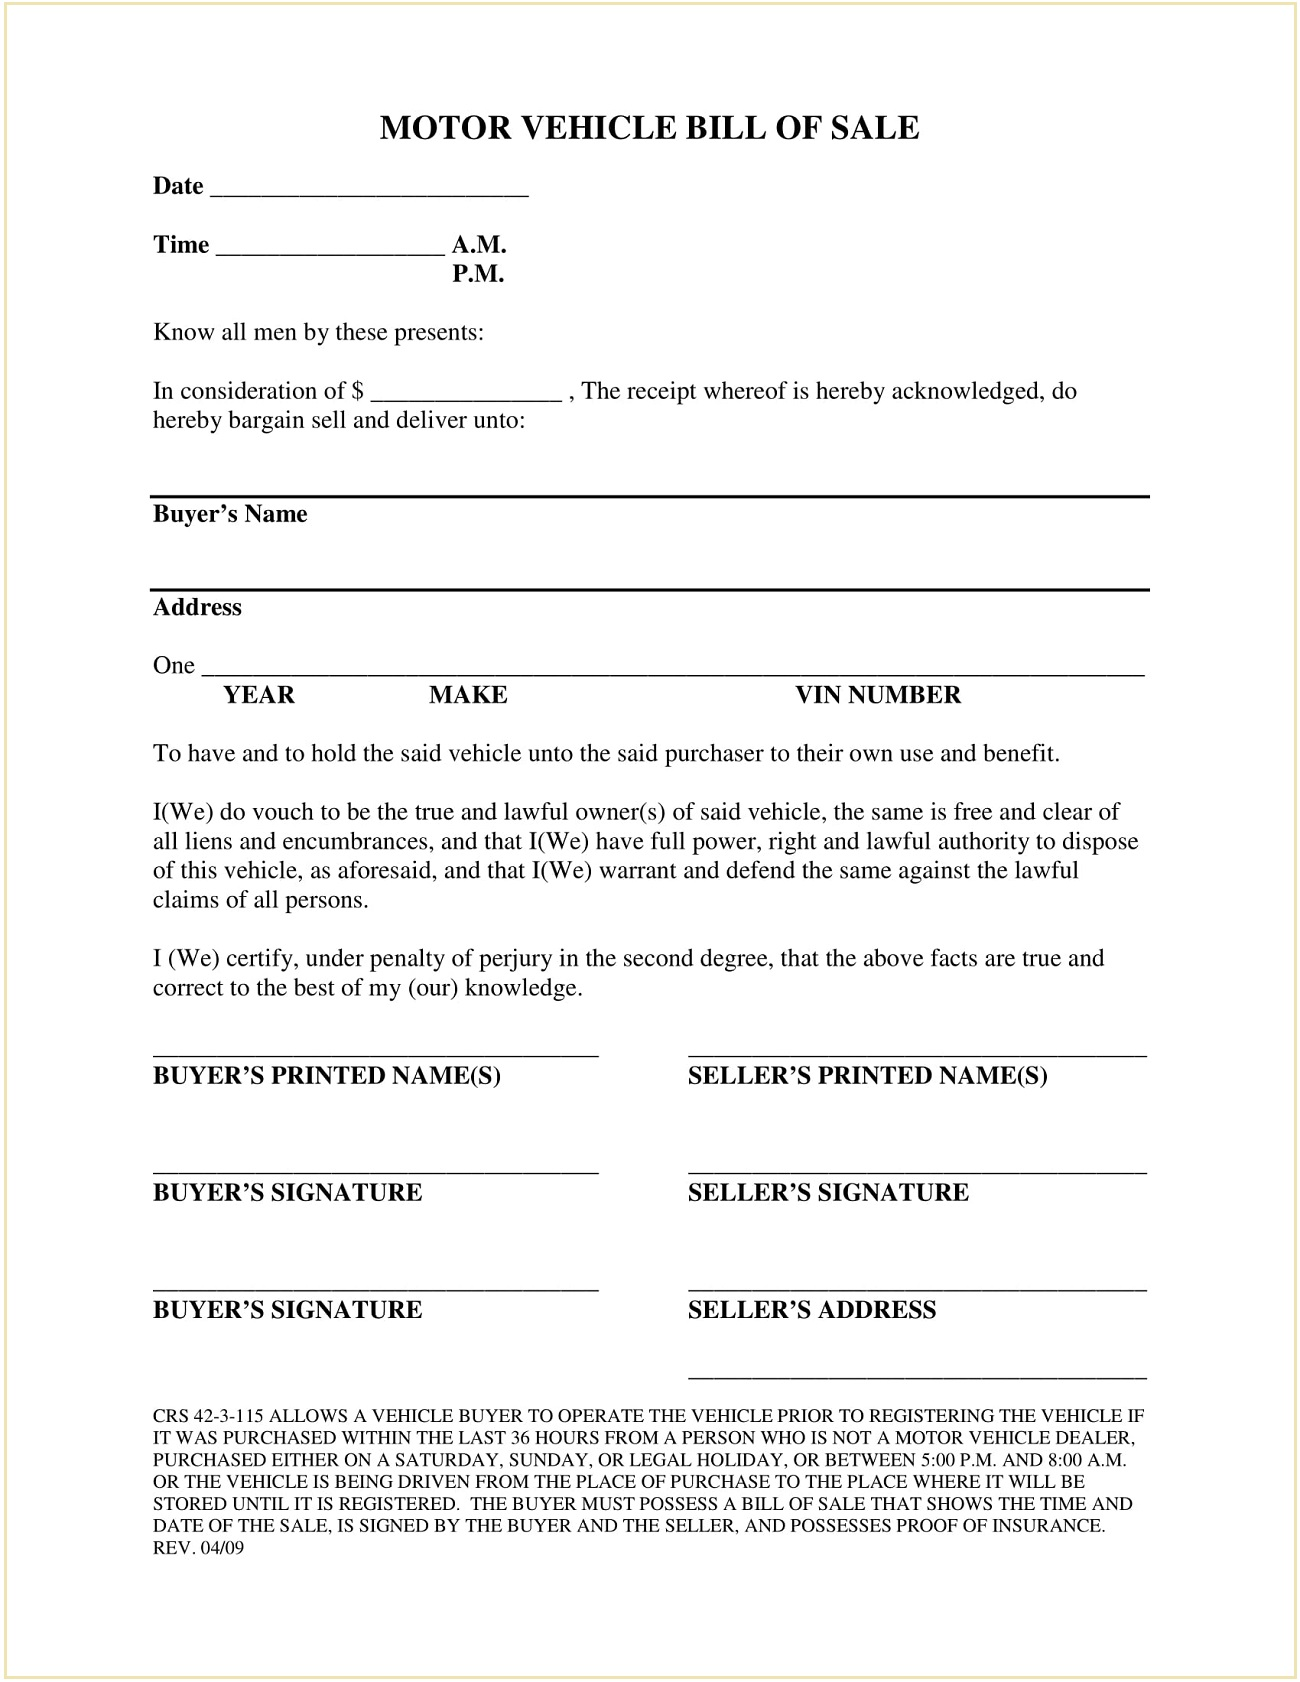 Jefferson County Colorado DMV Motor Vehicle Bill Of Sale Form PDF Adams Is A Required In Selling Car General Mesa  Template Full